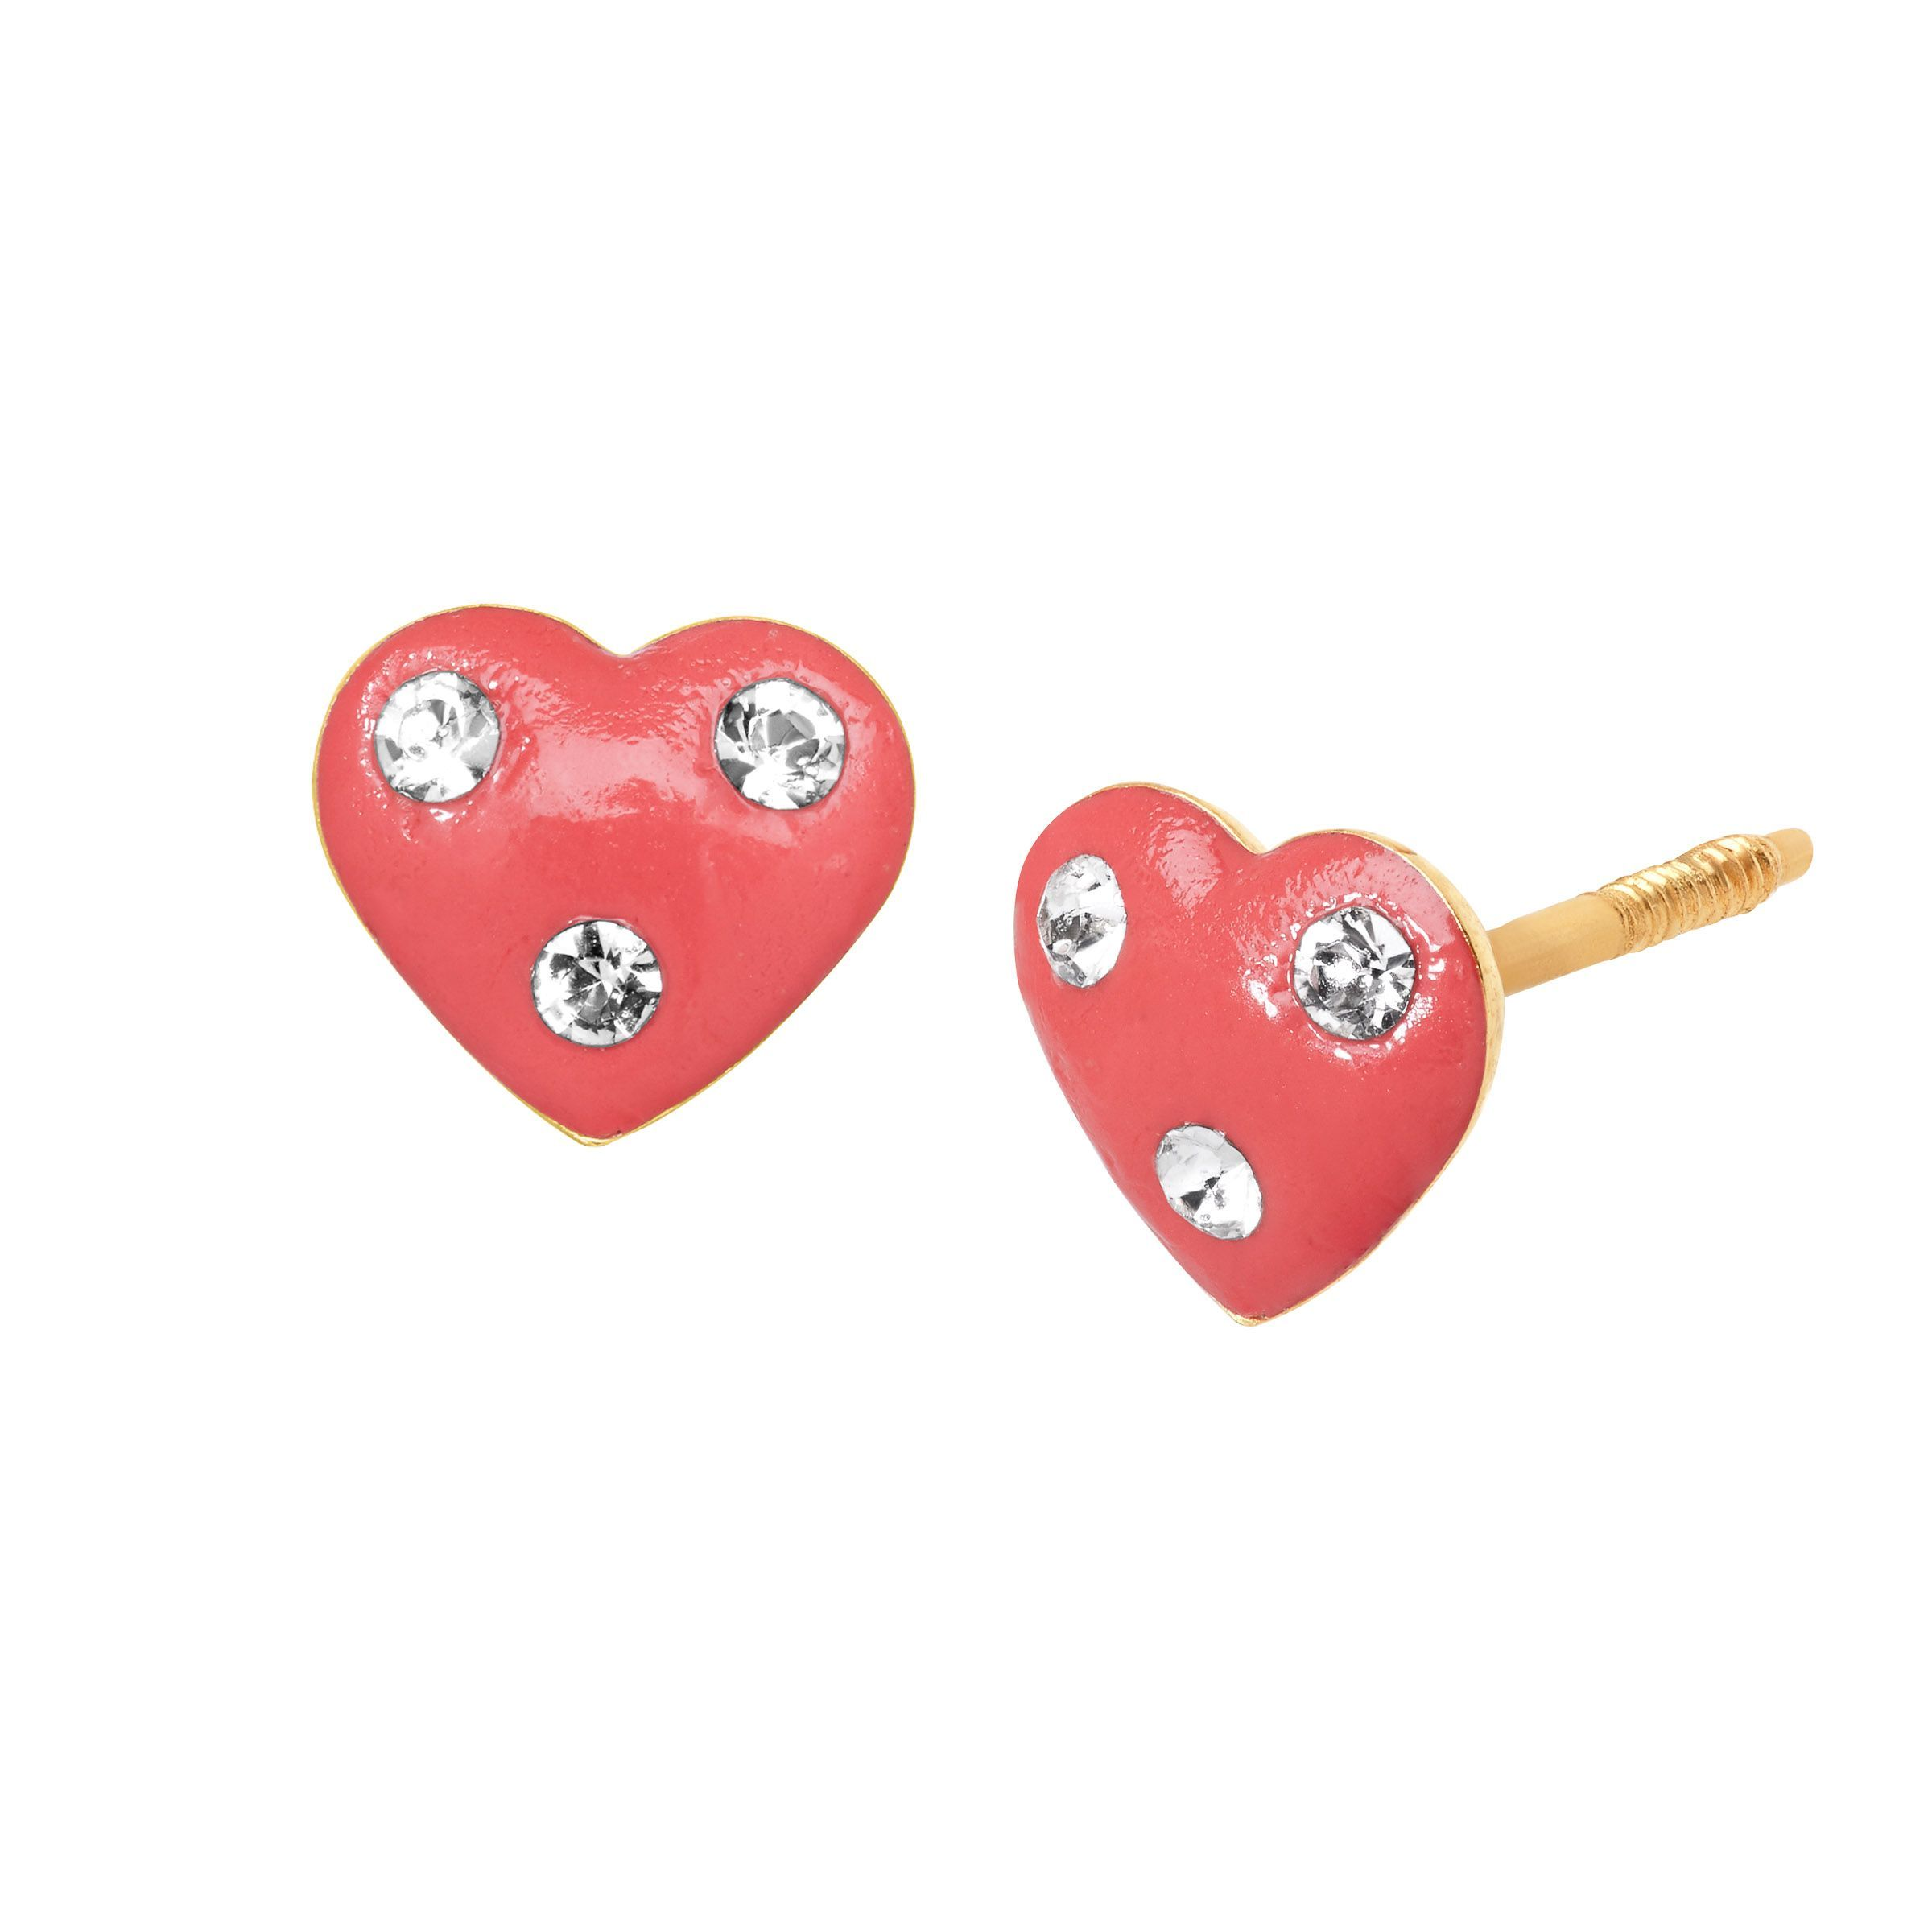 Details About Crystaluxe S Pink Heart Stud Earrings With Swarovski Crystals In 14k Gold